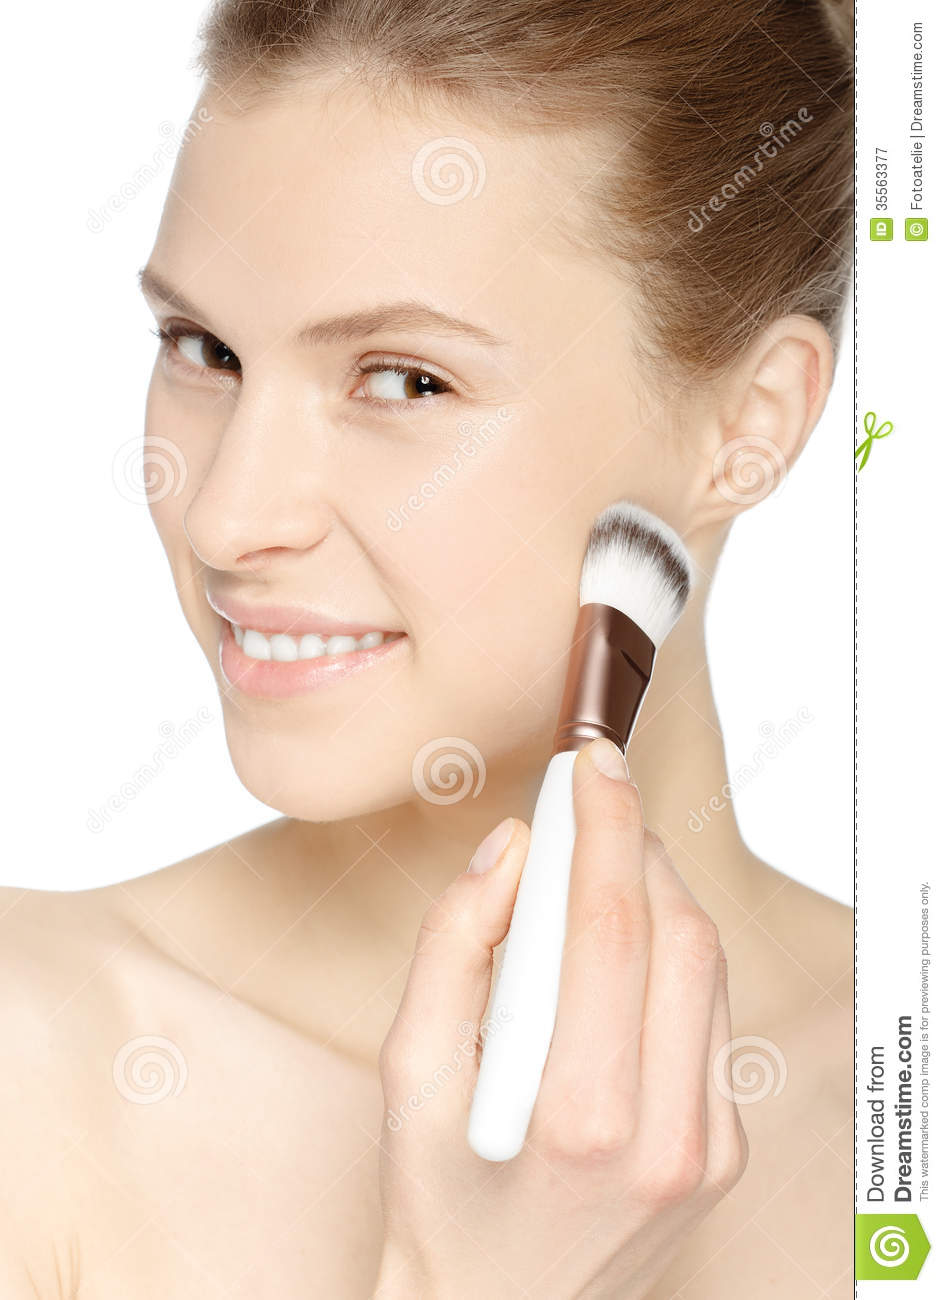 how to get perfect face skin naturally